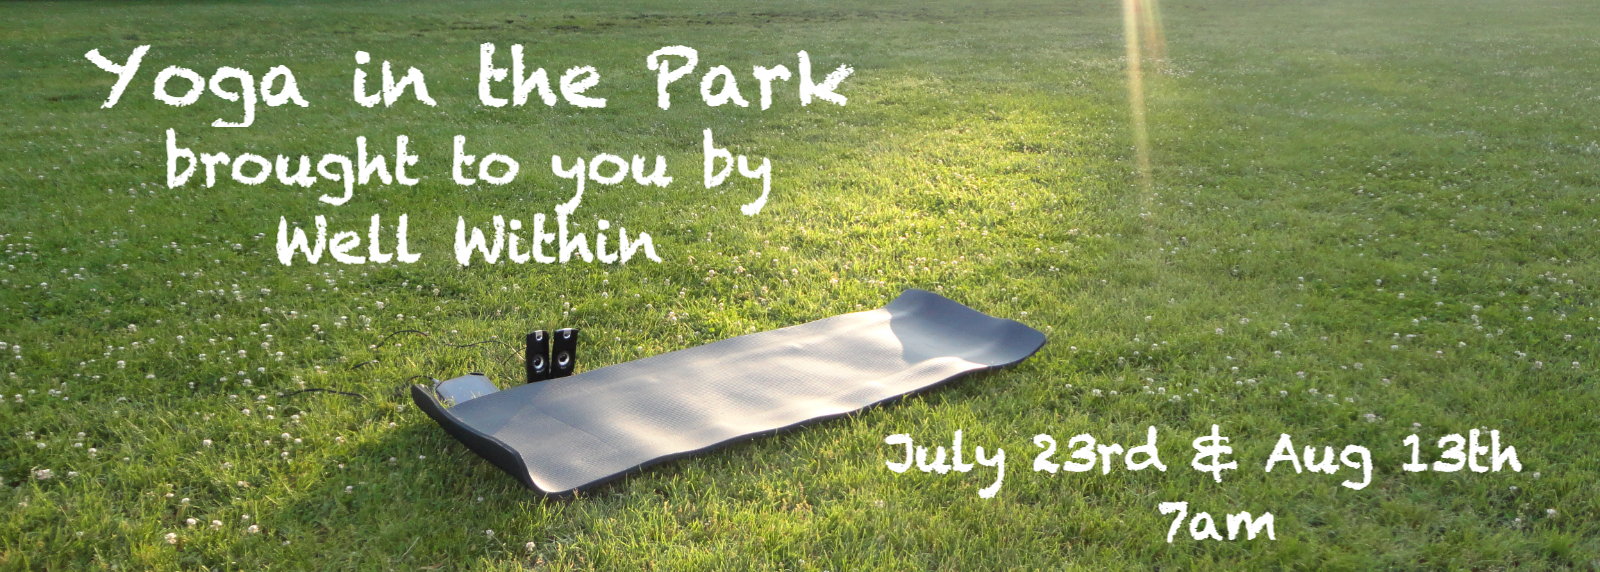 Free Yoga in the Park from Well Within